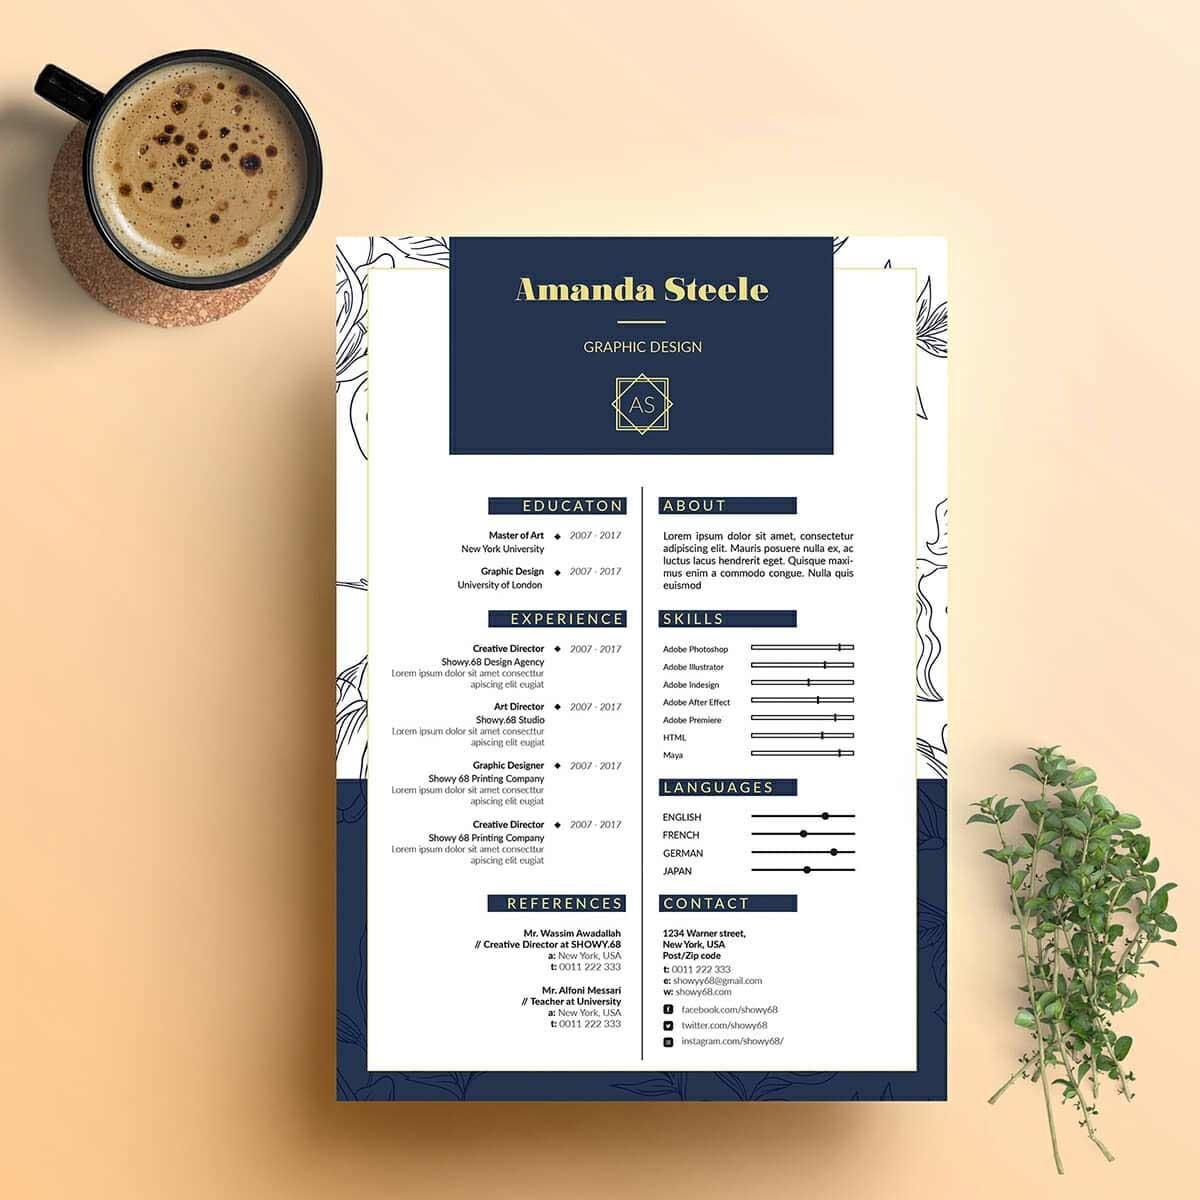 15 Resume Design Ideas  Inspirations